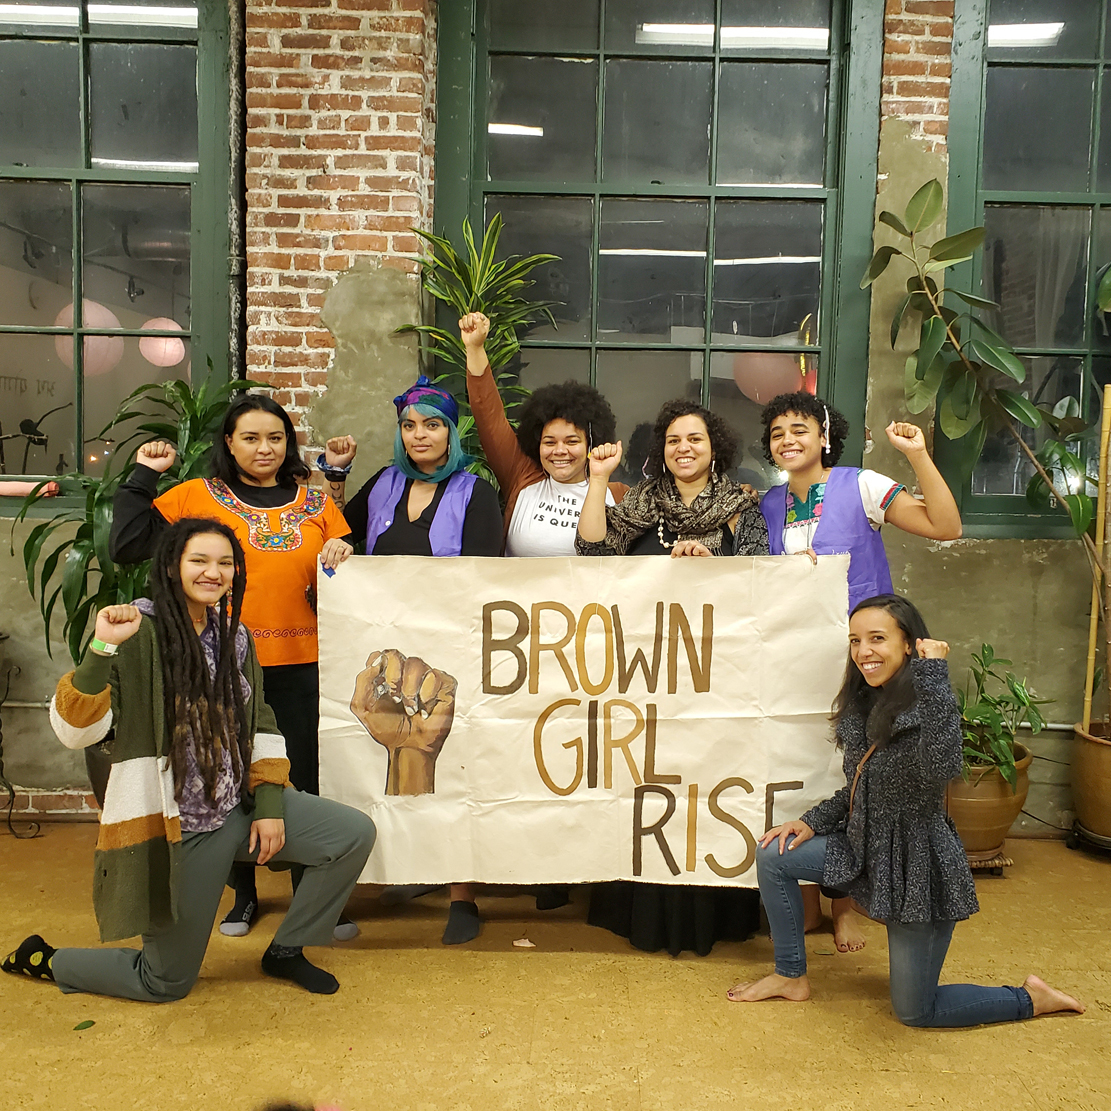 """Important work"": Brown Girl Rise Wins $2,500 in OnPoint's Social Giving Campaign"